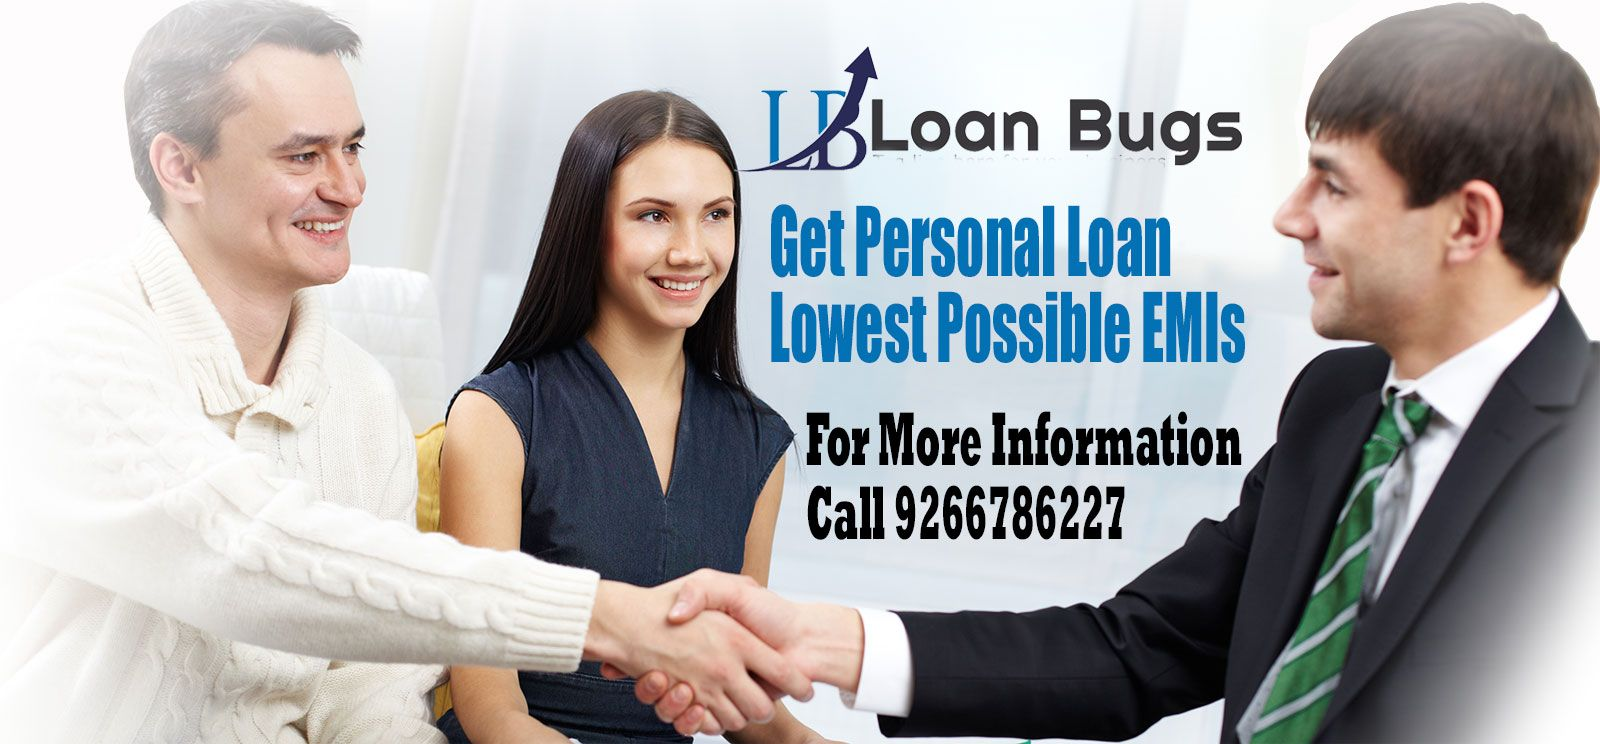 Online Loanbugs Personal Loans Apply And Get Instant Personal Loan Approval Personal Loans Personal Loans Online Online Loans